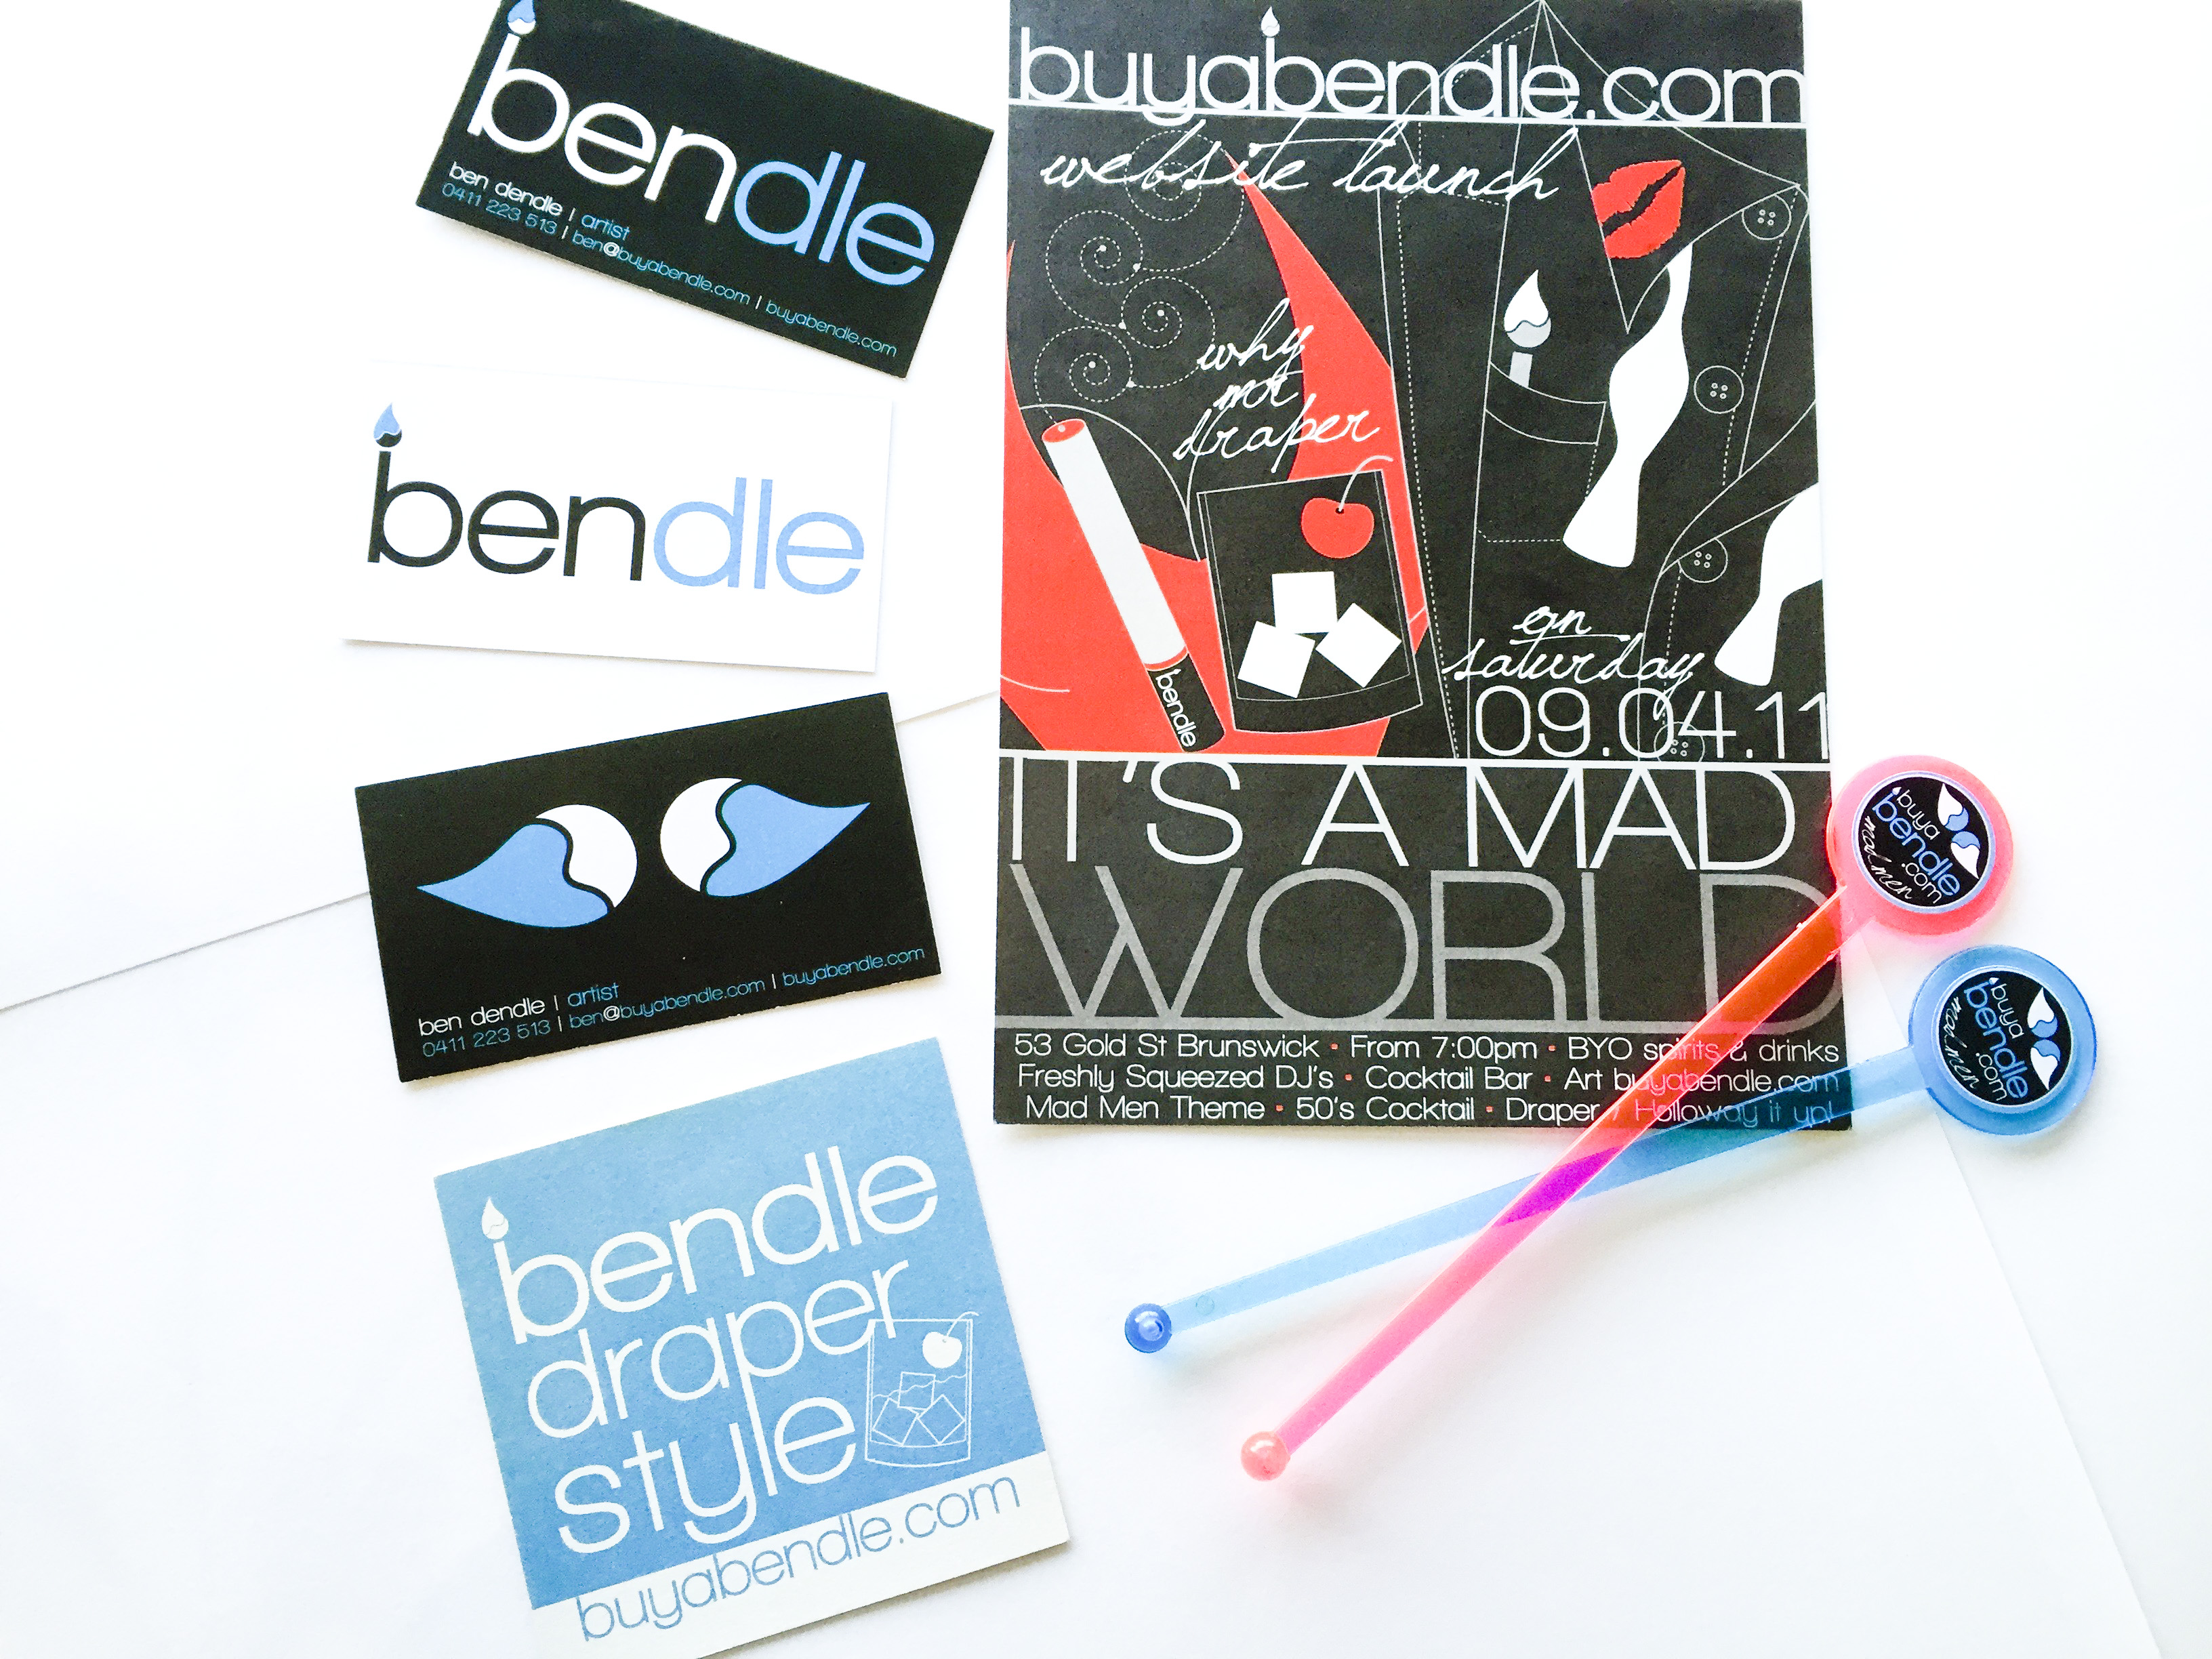 Bendle Launch Party